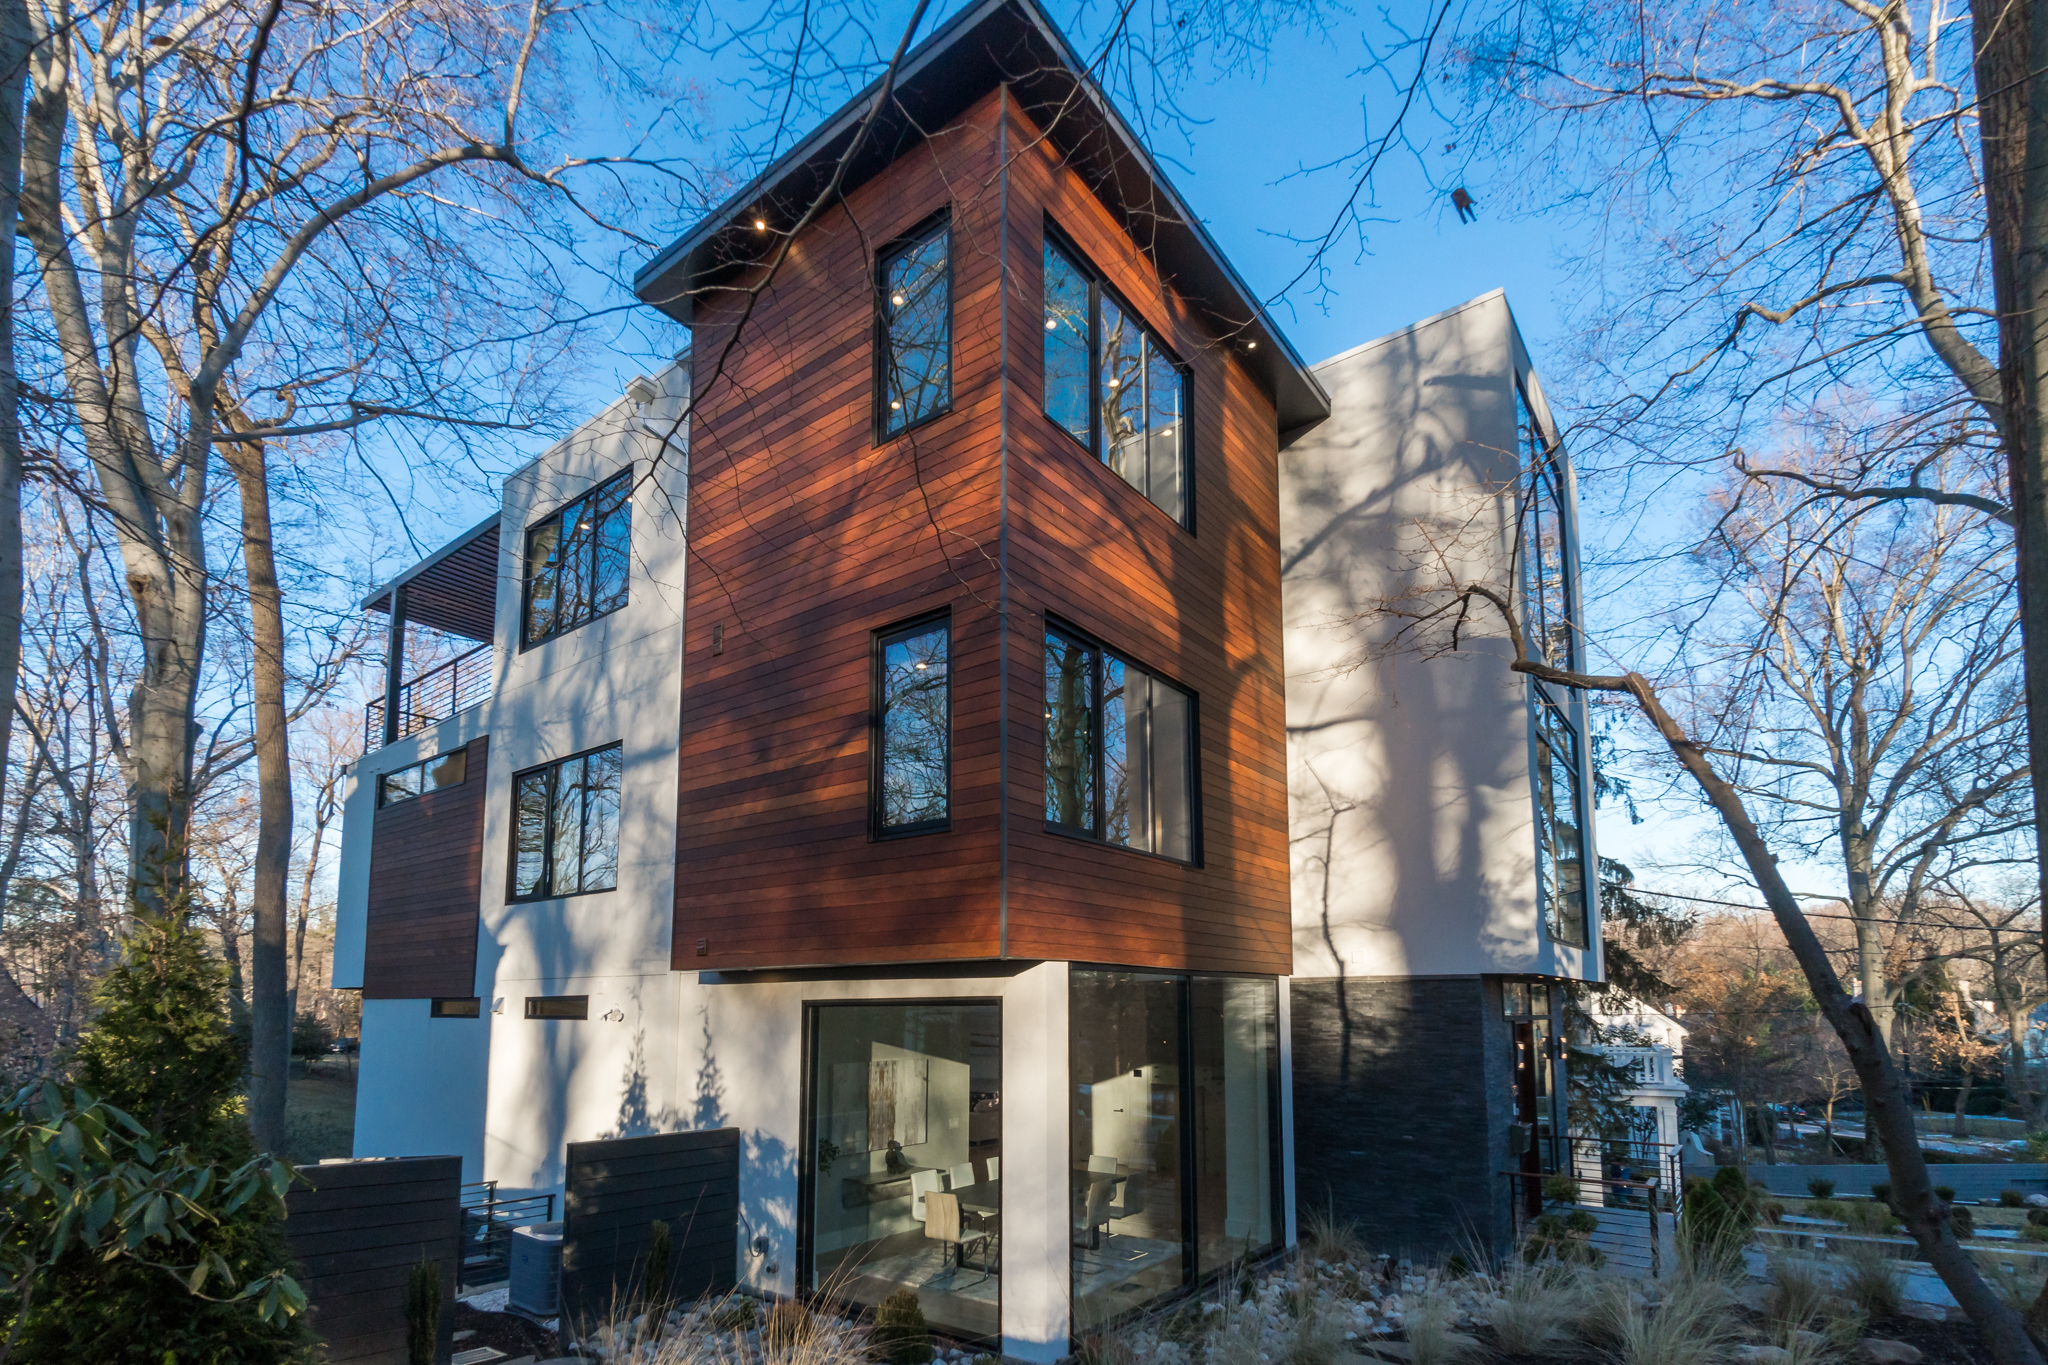 This modern four-story home in Forest Hills just hit the market and we admit... we have house envy! Built in 2018, the 7,300-square-foot property has six bedrooms, five full bathrooms, one half bath, two fireplaces, a finished basement (with a rec room, sauna and wine cellar), a heated outdoor pool and a two-car garage. The floor-to-ceiling windows throughout the home give off a &quot;treehouse-like&quot; vibe and offer unobstructed views of Rock Creek Park, plus lots of natural light. The current asking price is $3,875,000. For more information, you can see the full listing here (http://bit.ly/2DPbbbD) or contact listing agents Patrick Chauvin/Brad{&amp;nbsp;} House of Compass Real Estate. (Image: Courtesy Compass Real Estate)<p></p>